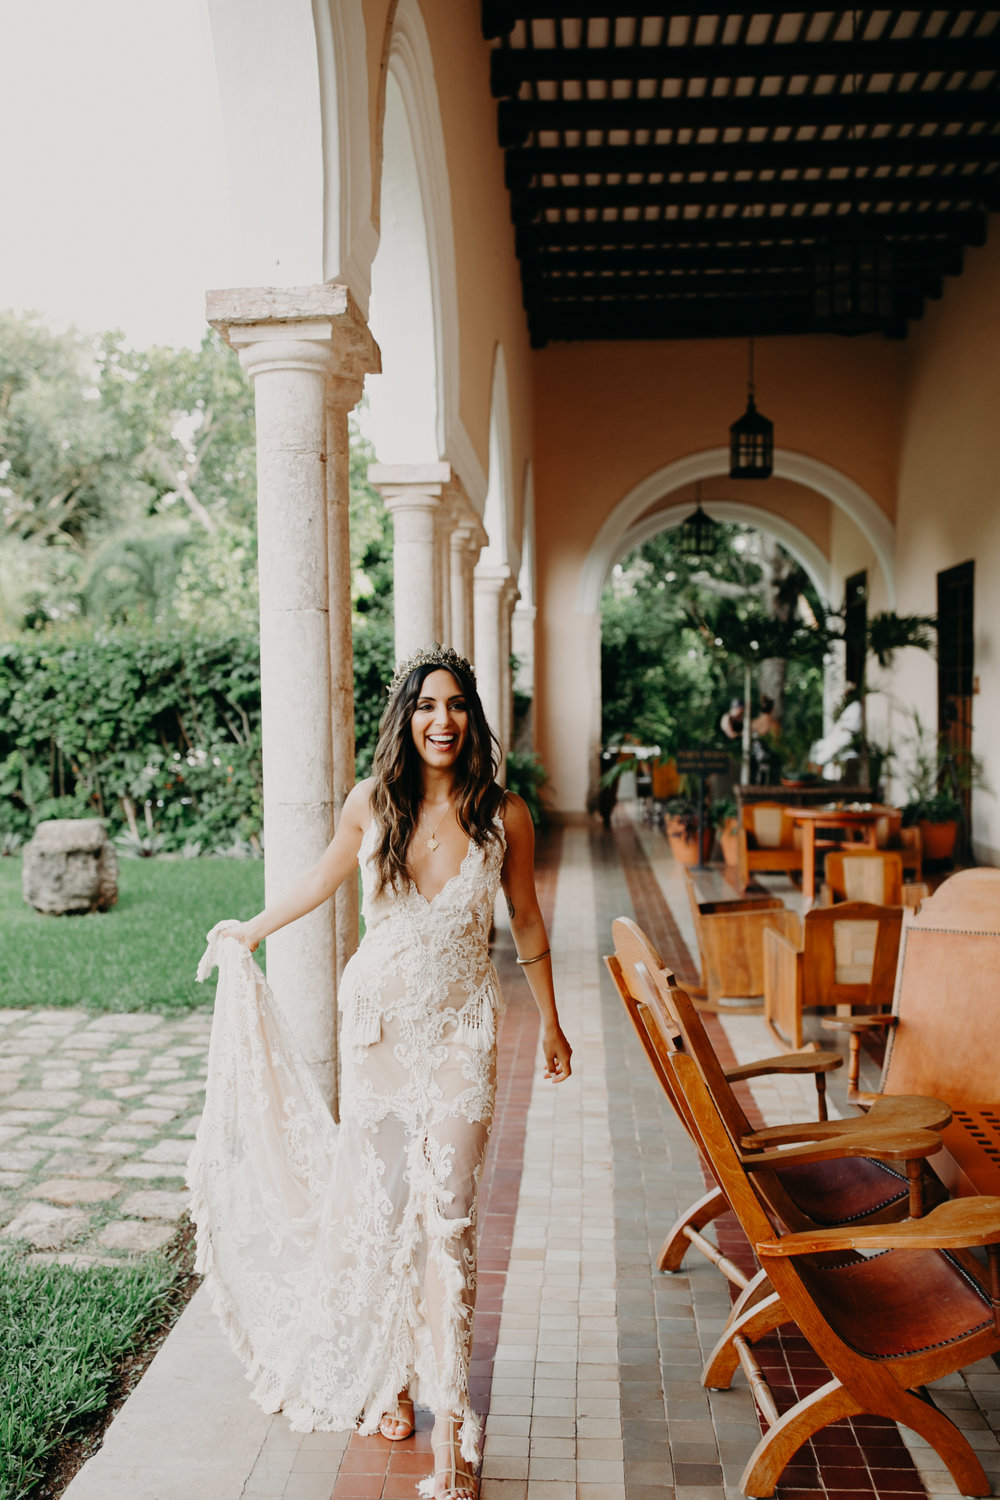 Hacienda Temozon Yucatan Mexico Wedding | Ida & Peter Emily Magers Photography-508.jpg